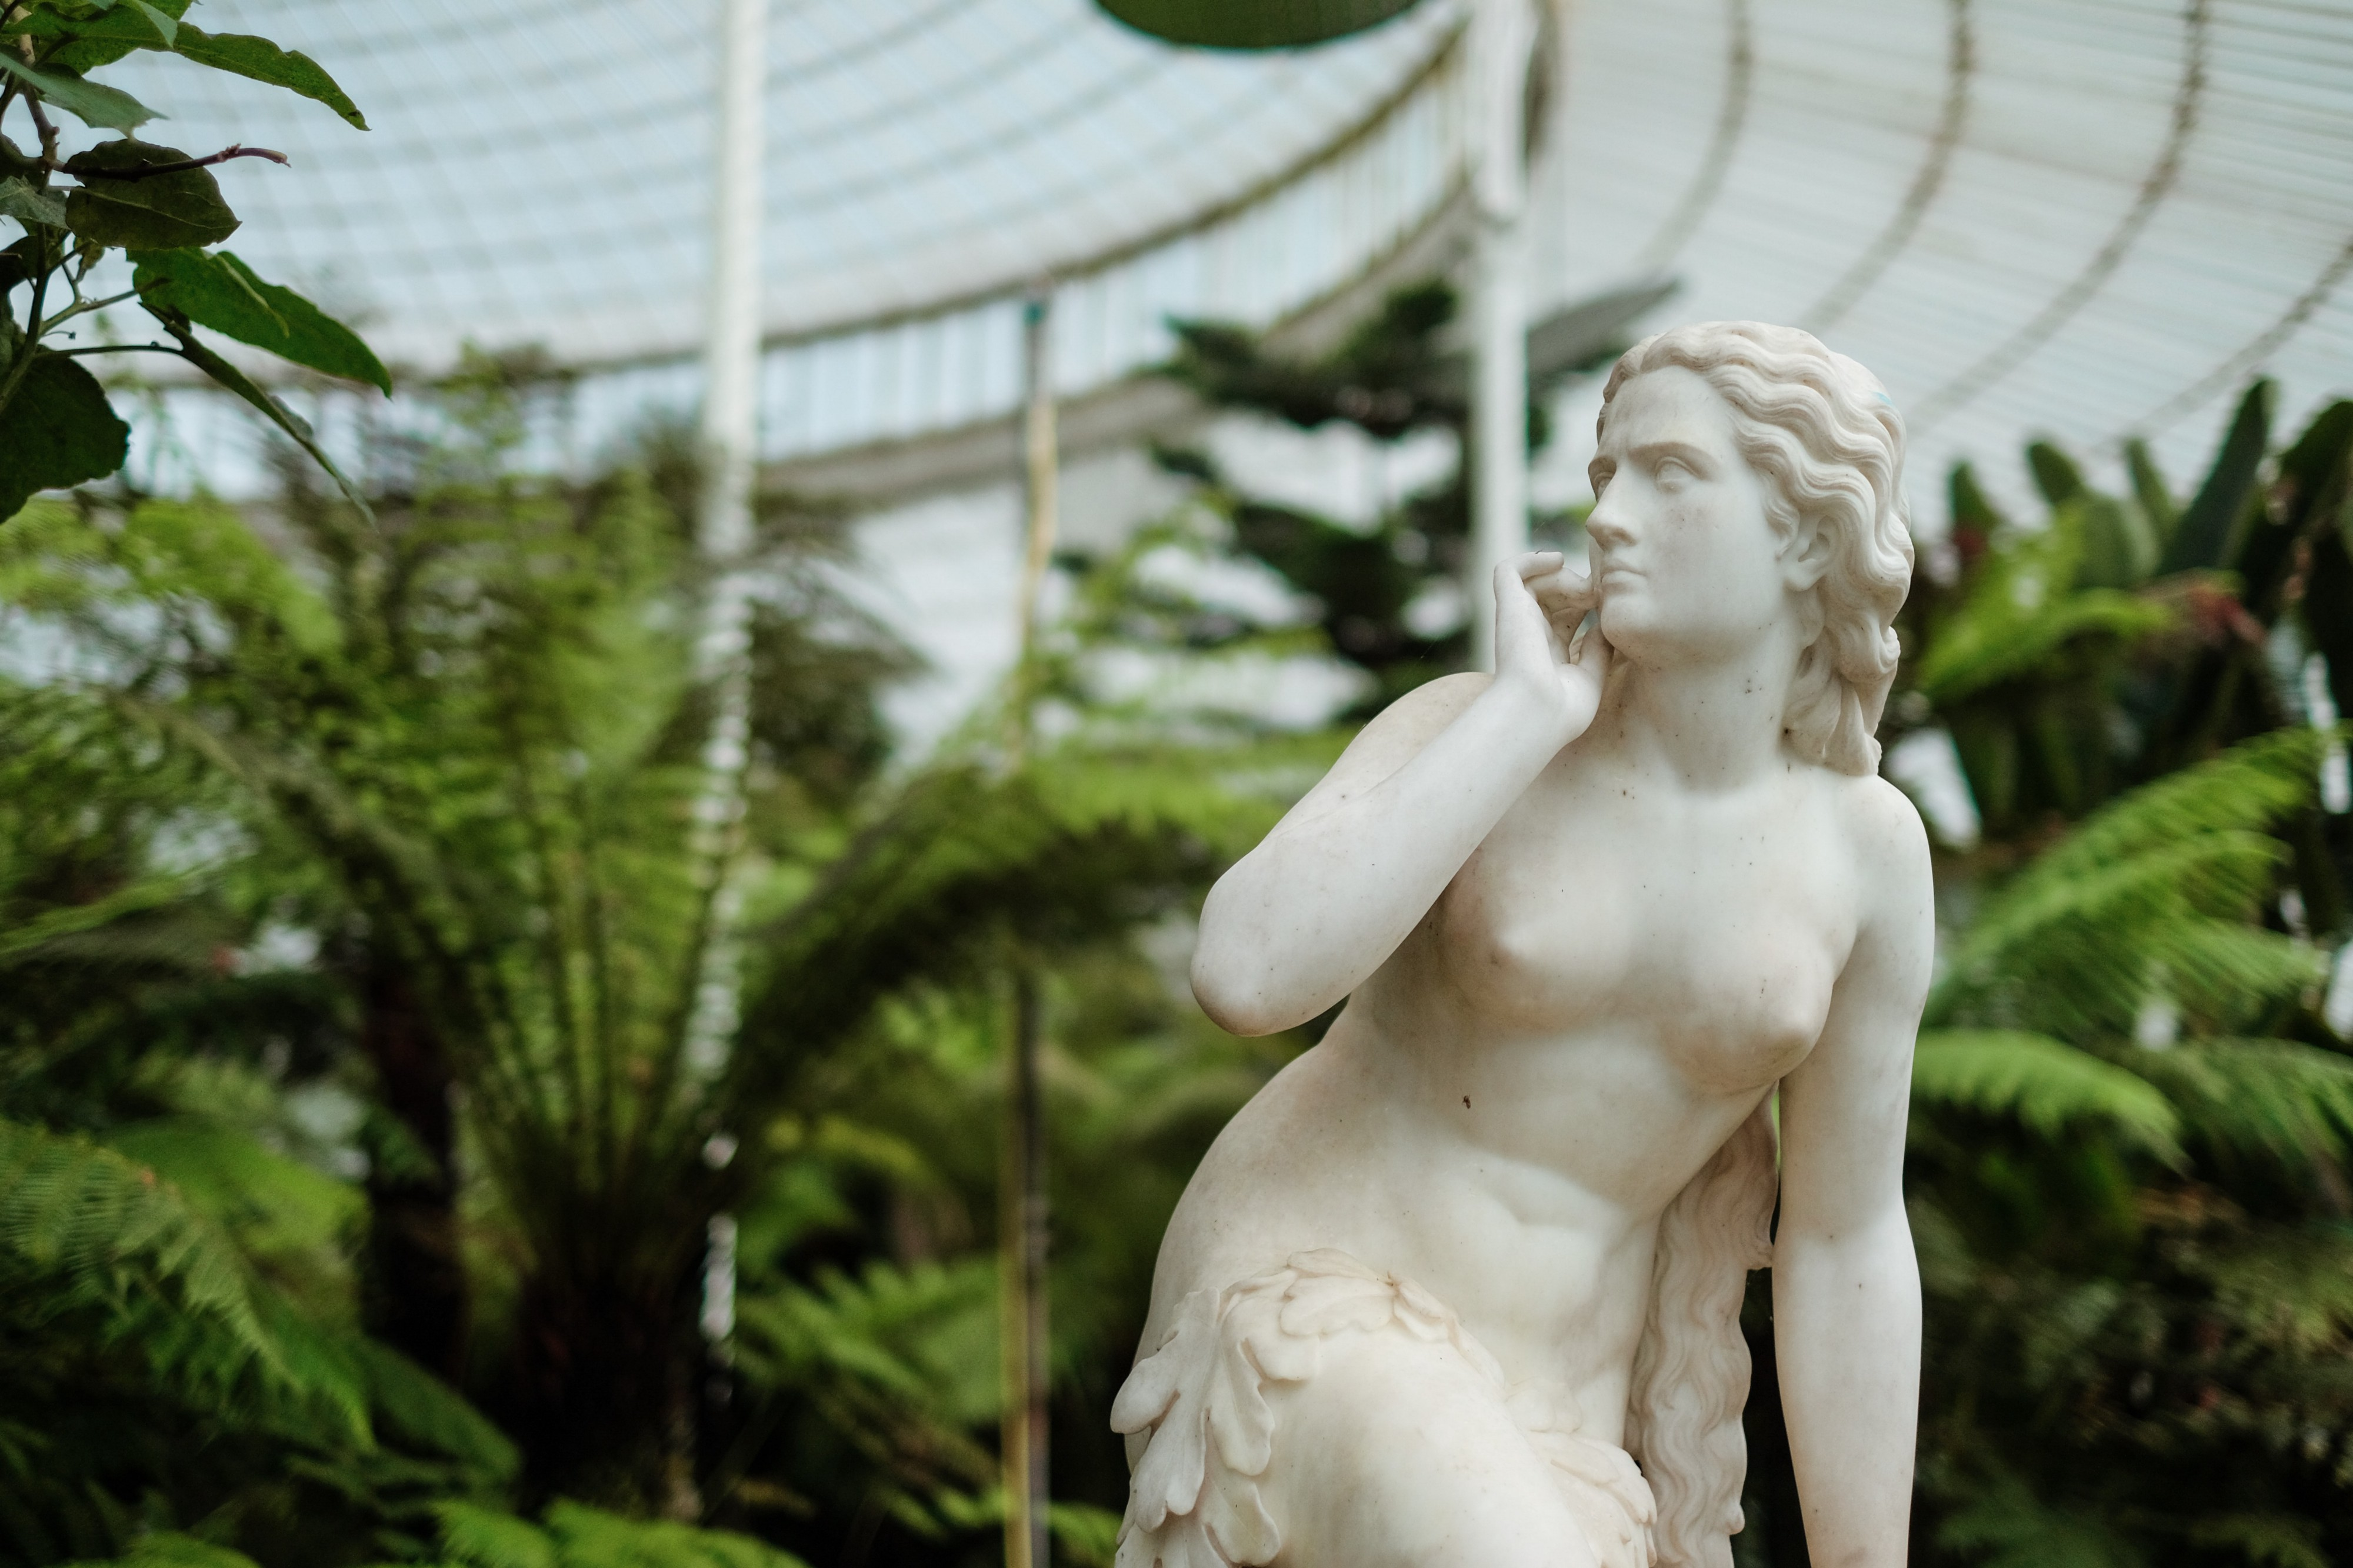 A marble statue of a thin woman looking off to the side, angrily and mistrustfully. The statue stands in front of lush ferns.